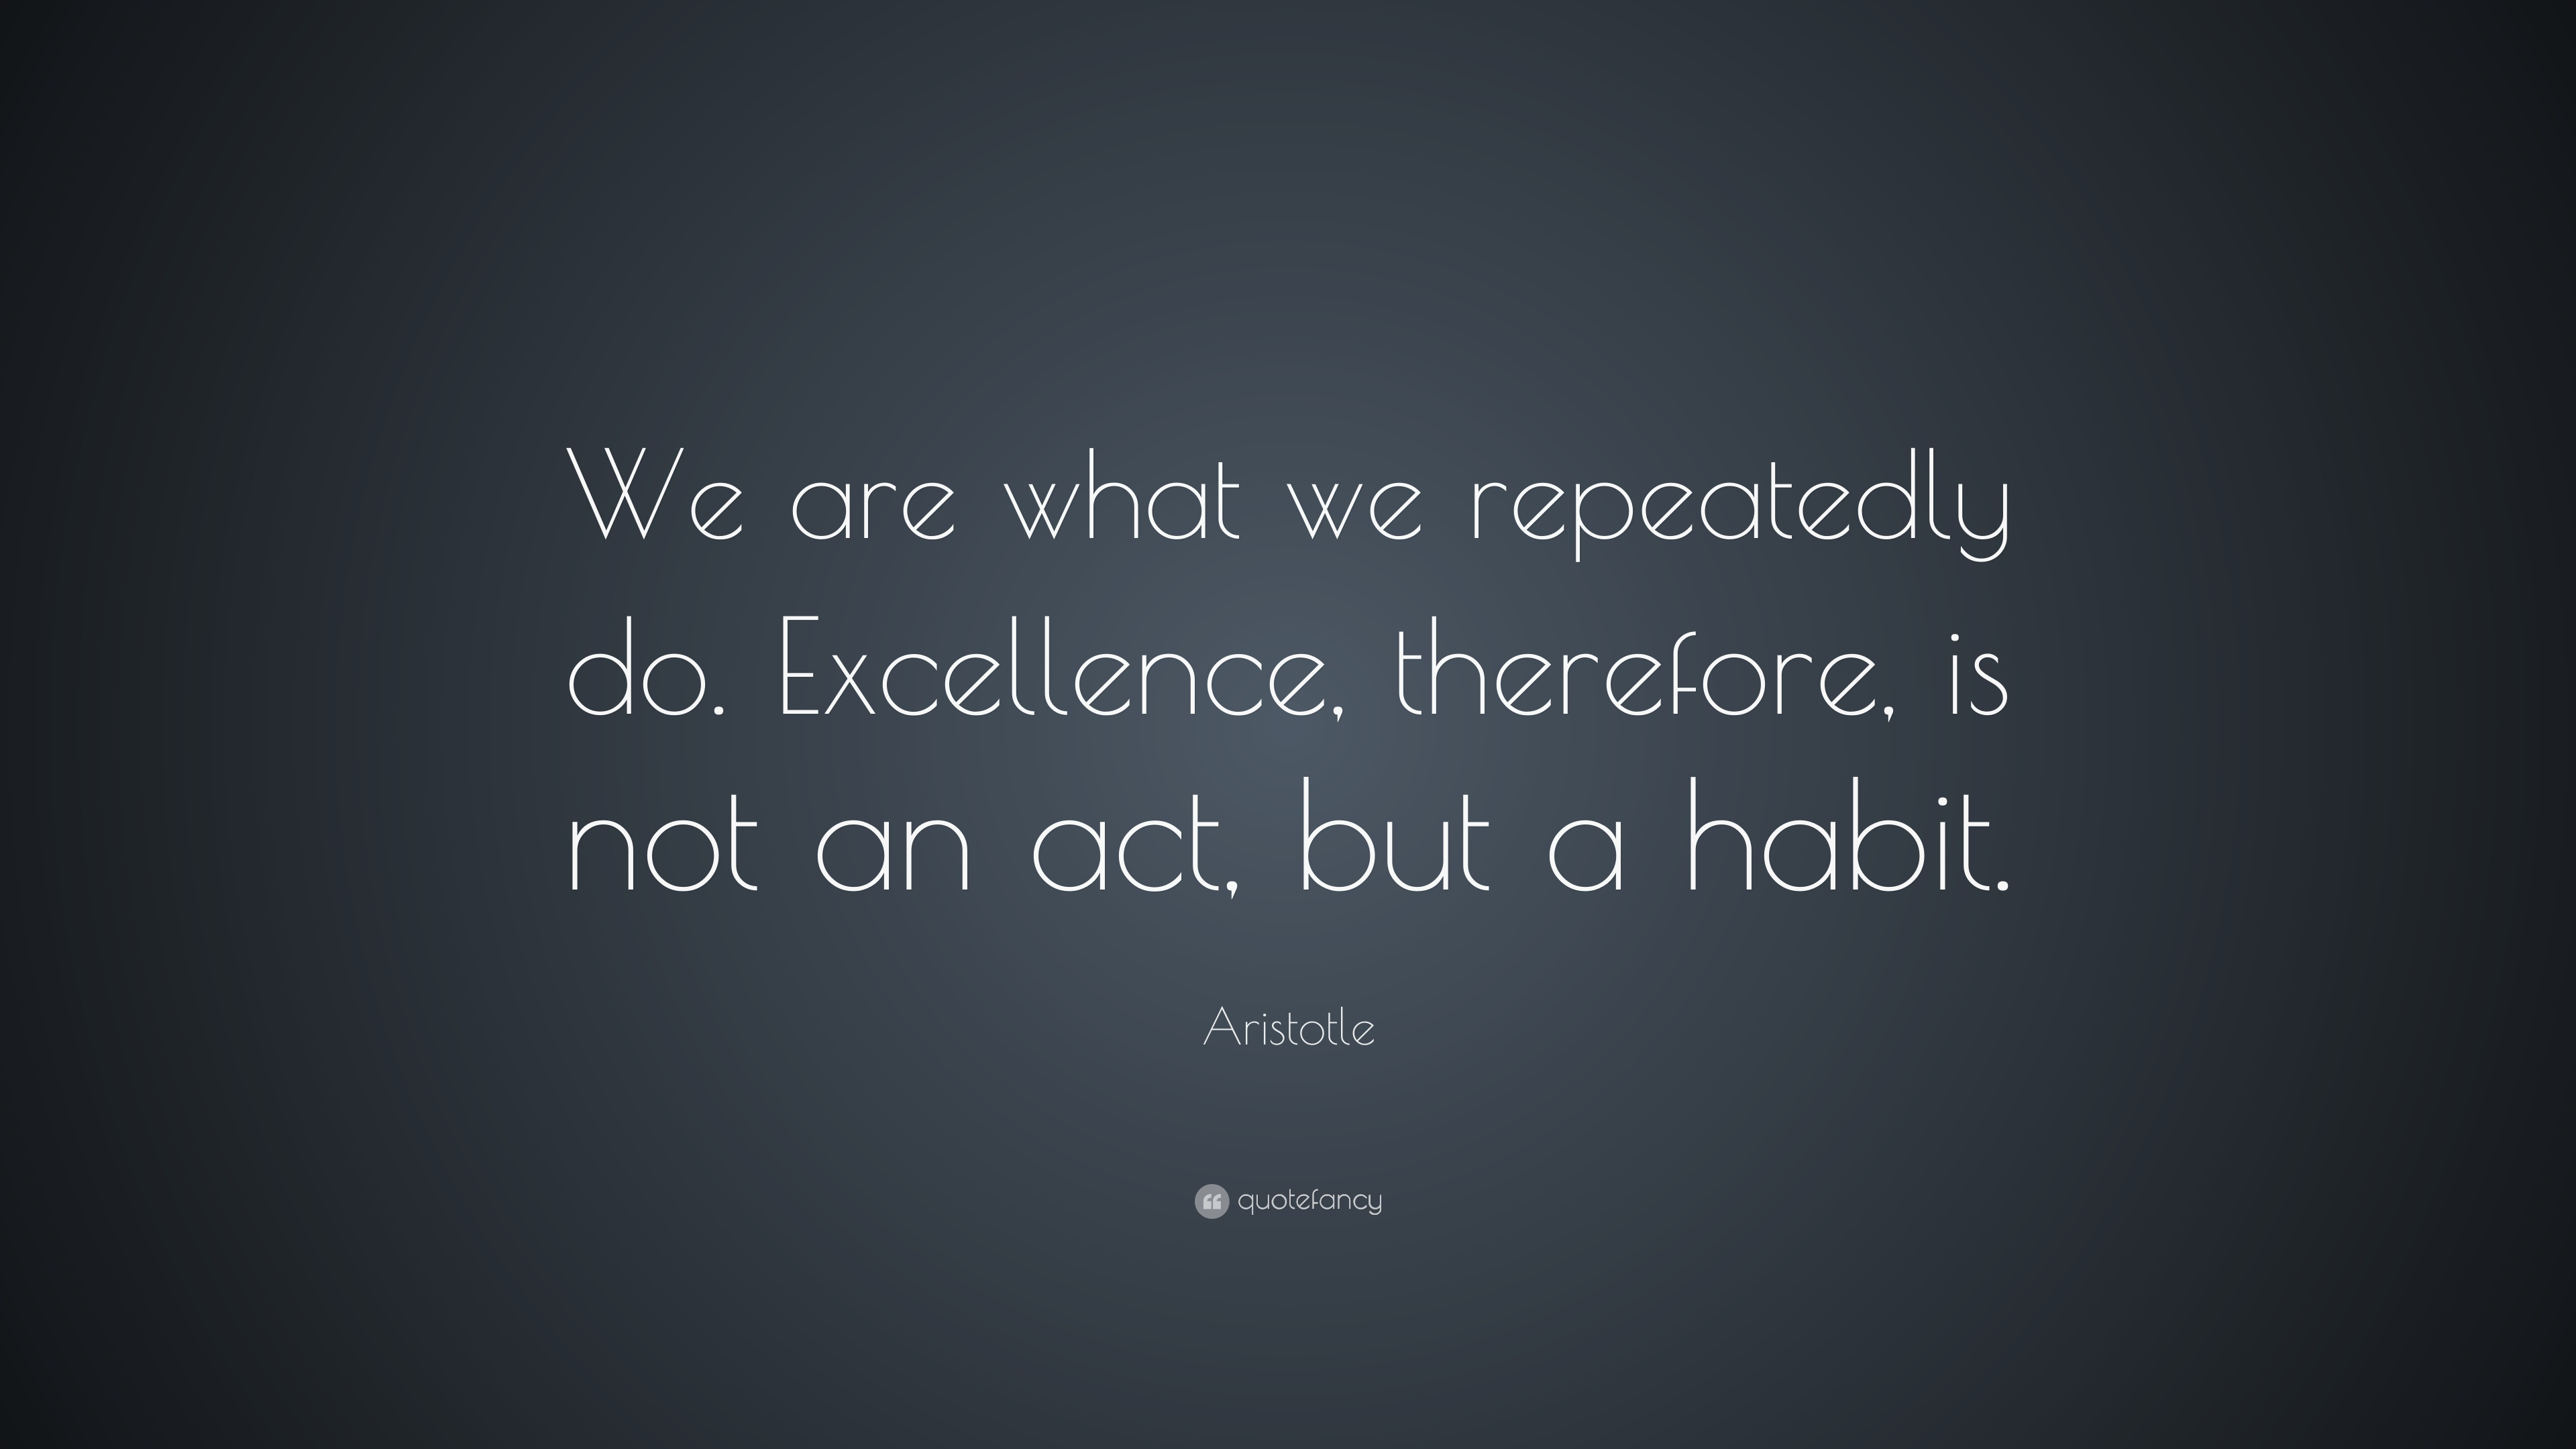 Success Quotes Hd Wallpapers 1080p Aristotle Quote We Are What We Repeatedly Do Excellence